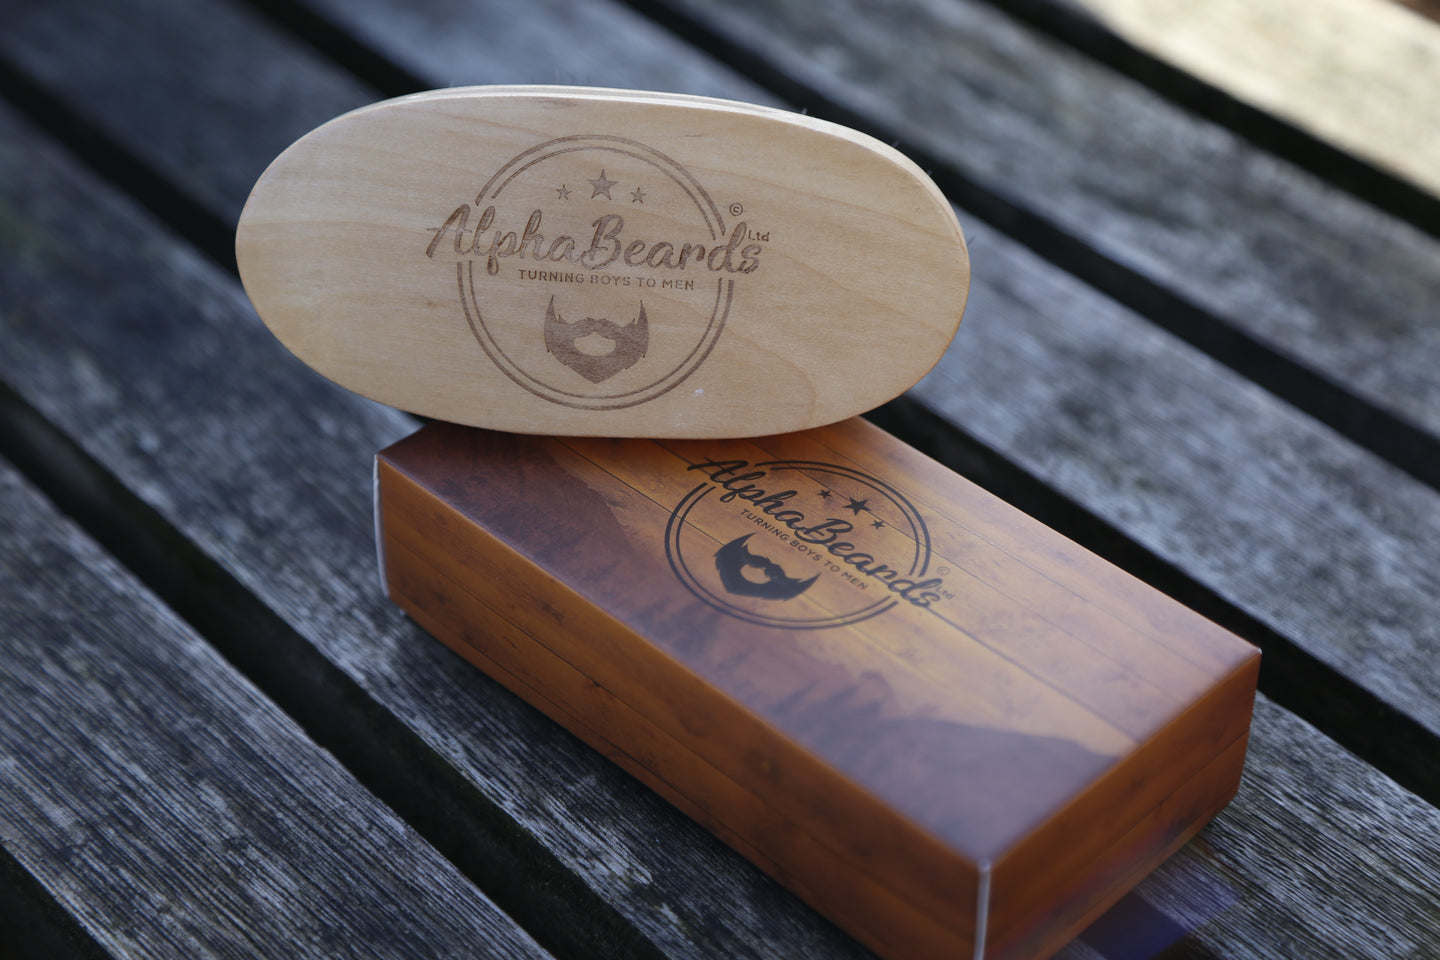 Alpha Beards Pear Wood Beard Brush